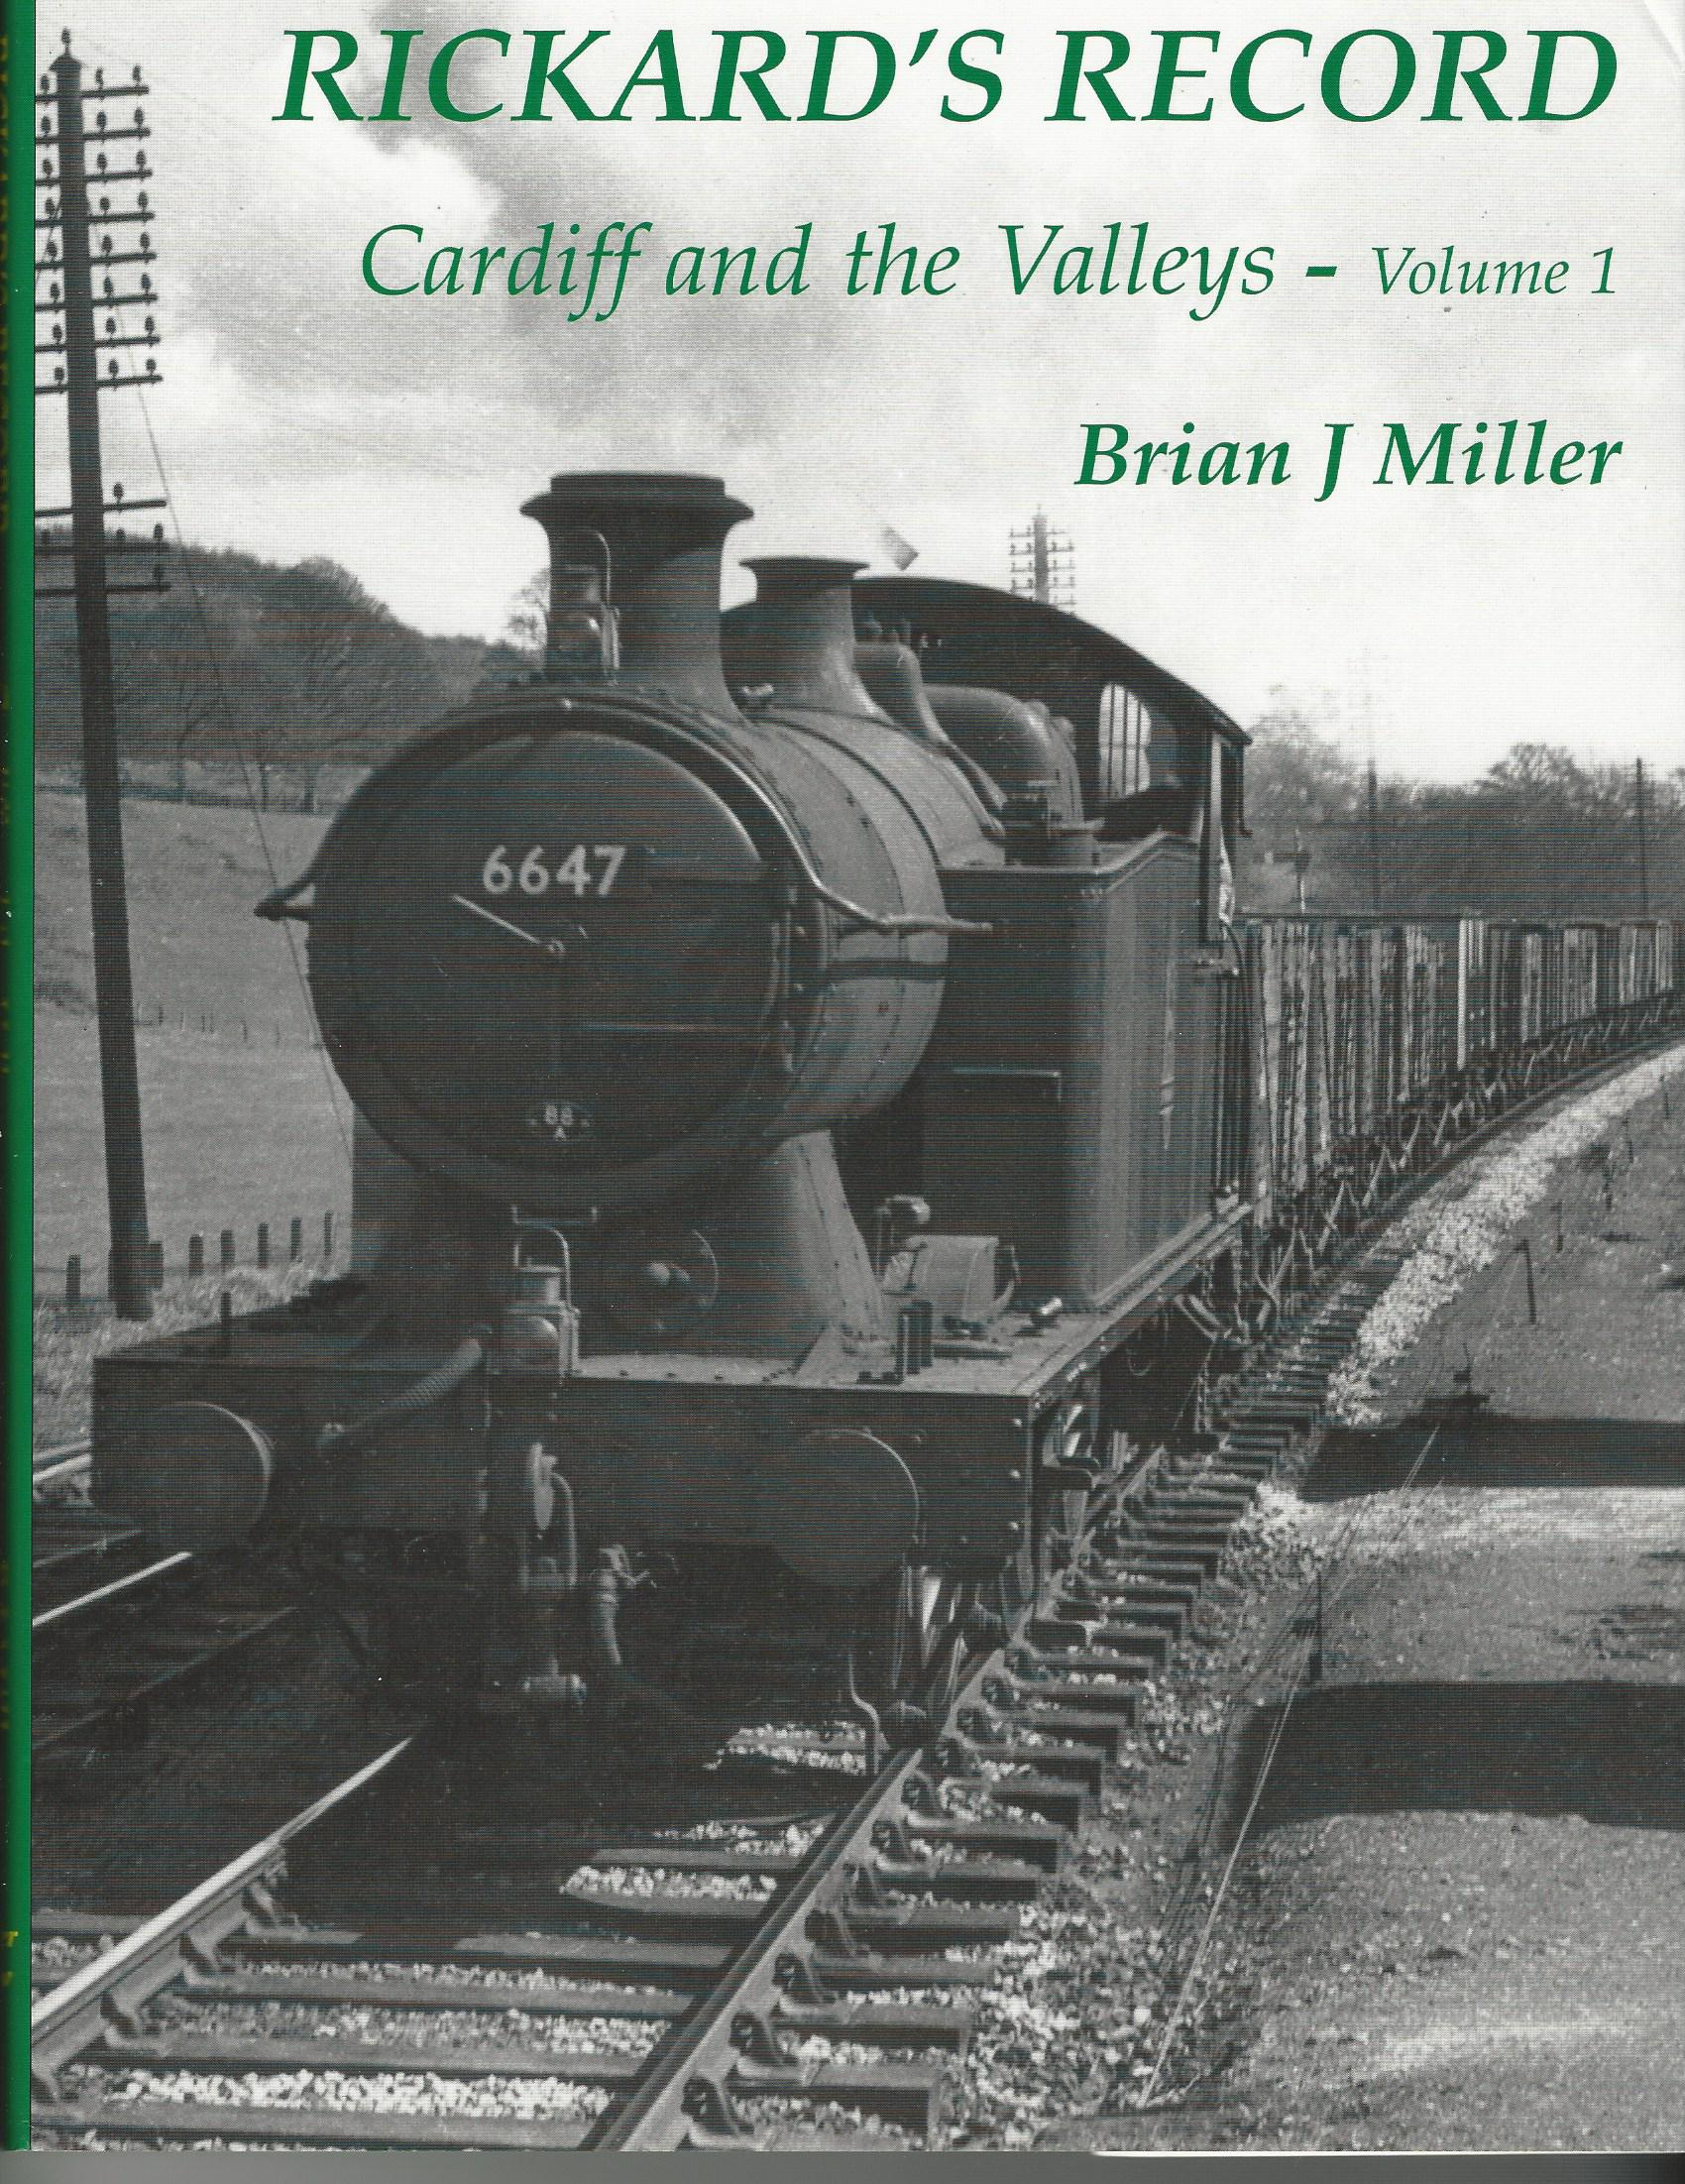 Image for Rickard's Record: Cardiff and the Valleys (volume 1).